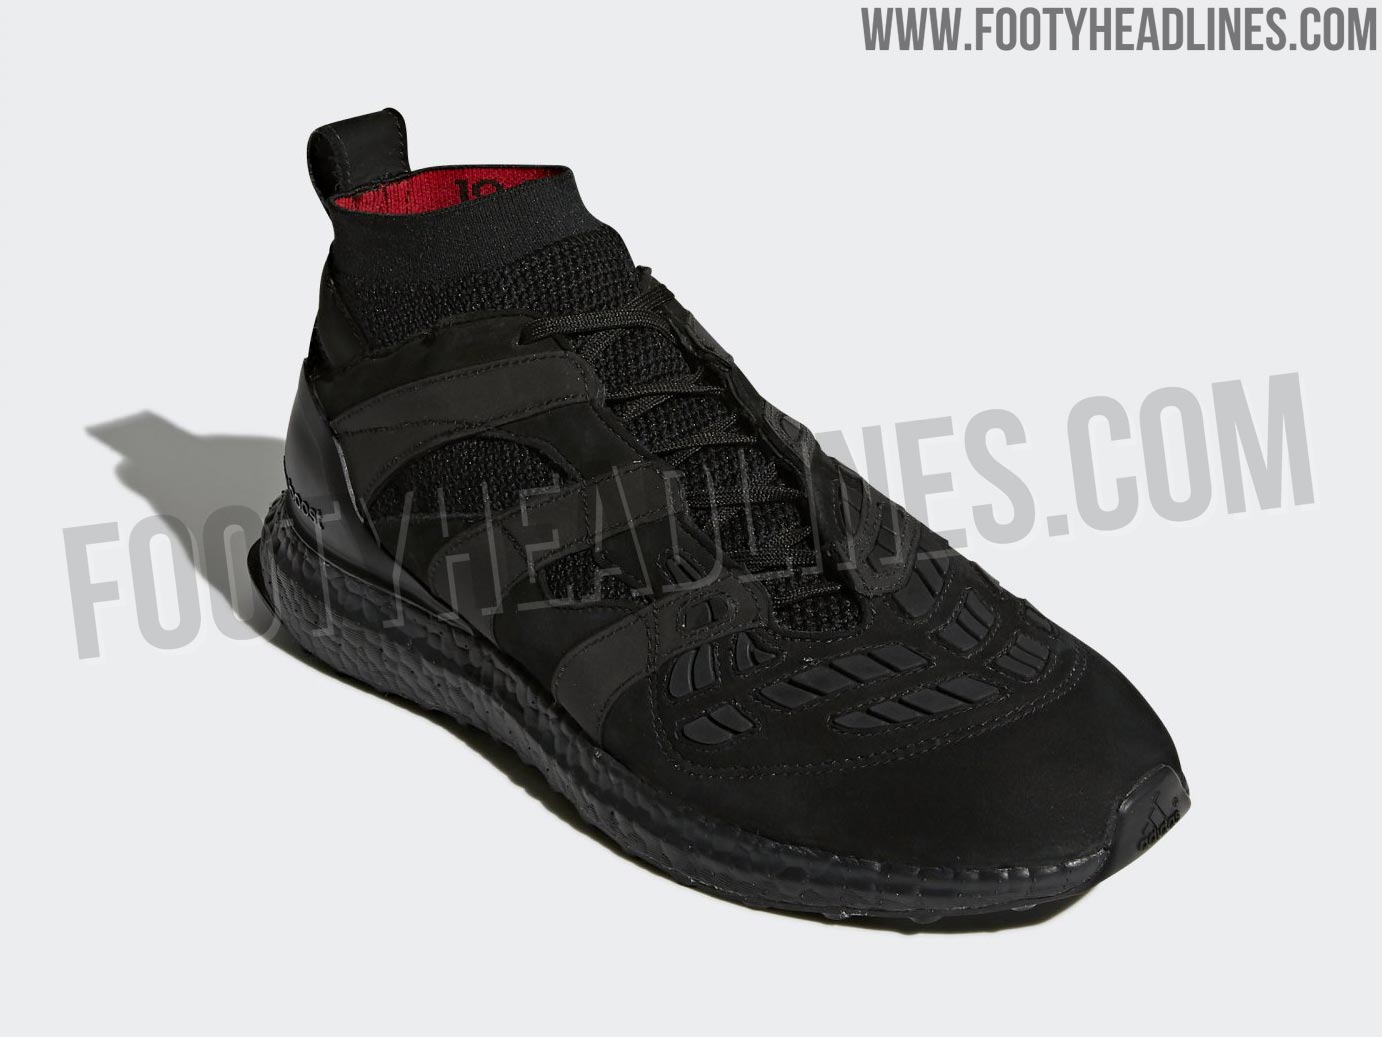 fe9aa88077eb4 +1 Adidas Predator Accelerator David Beckham Ultra Boost - Triple Black. +1  Expected to be extremely rare and guaranteed to be a limited-edition release